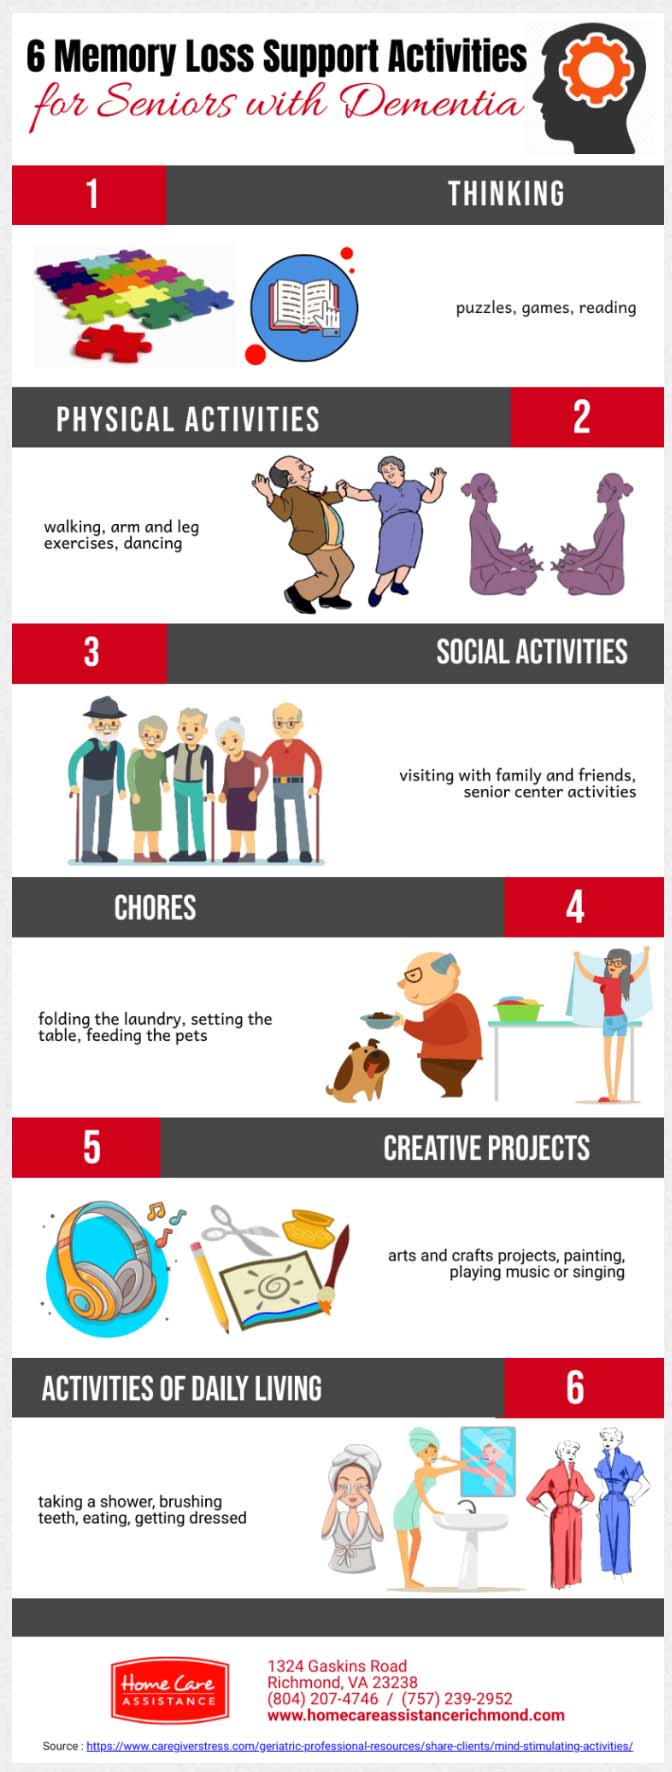 Memory Loss Support Activities for Seniors with Dementia